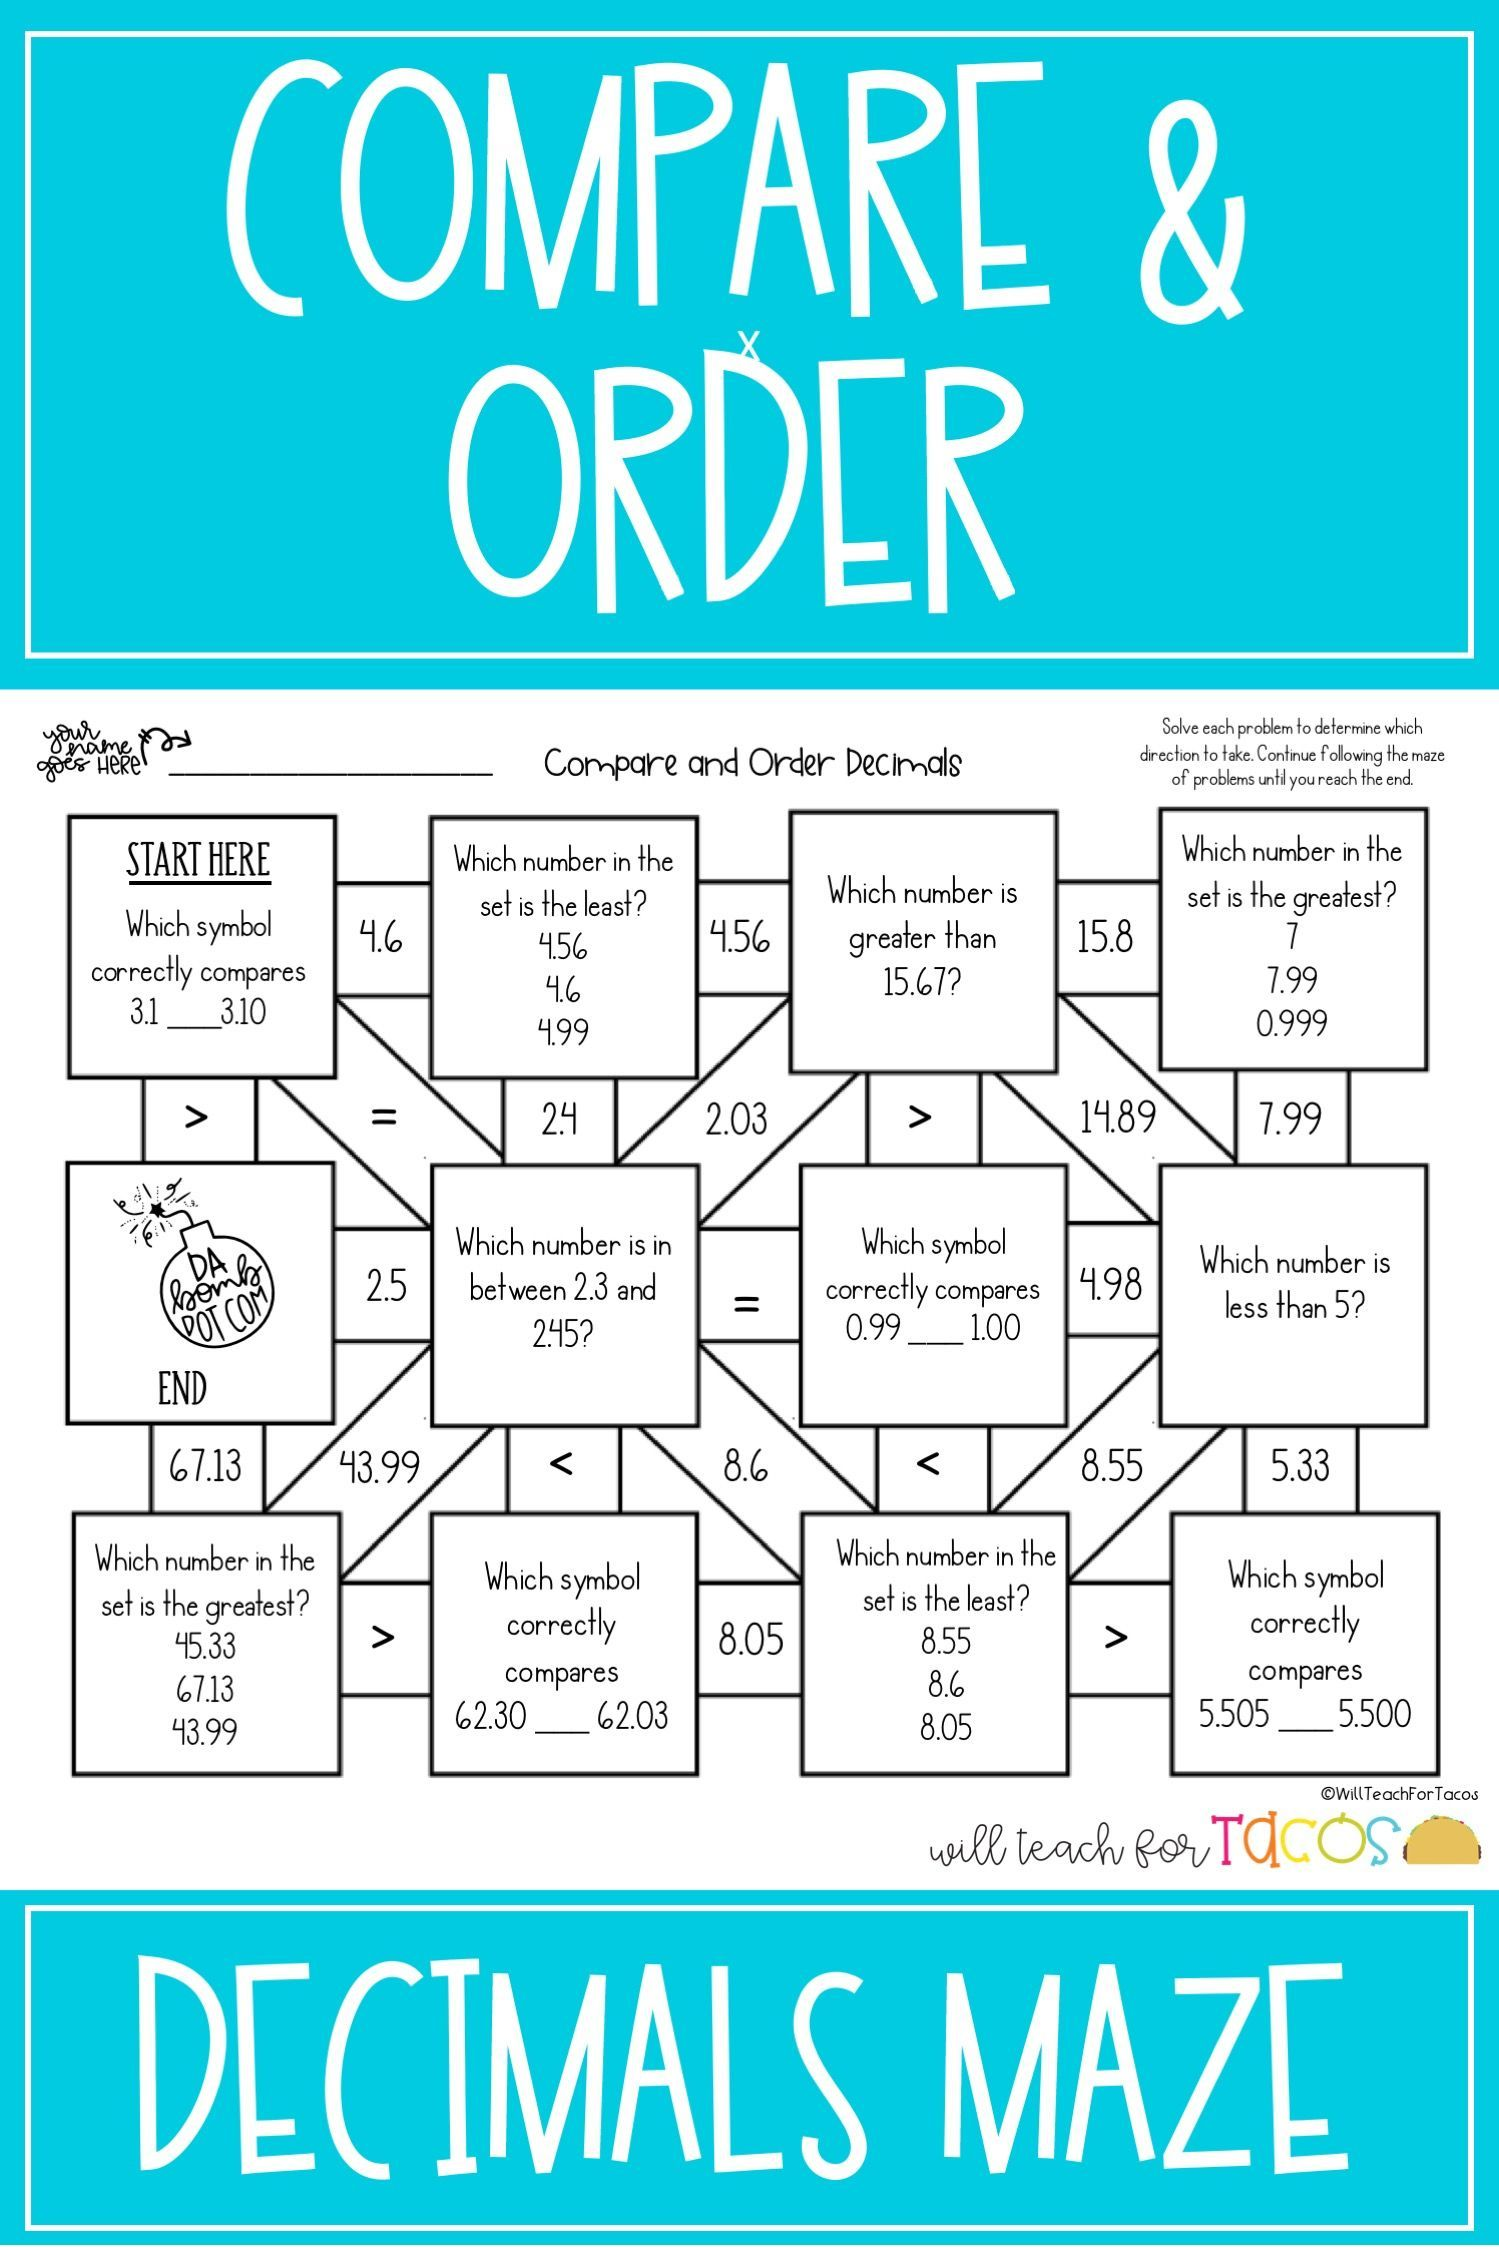 Comparing And Ordering Decimals Worksheets   Printable Worksheets and  Activities for Teachers [ 2249 x 1499 Pixel ]